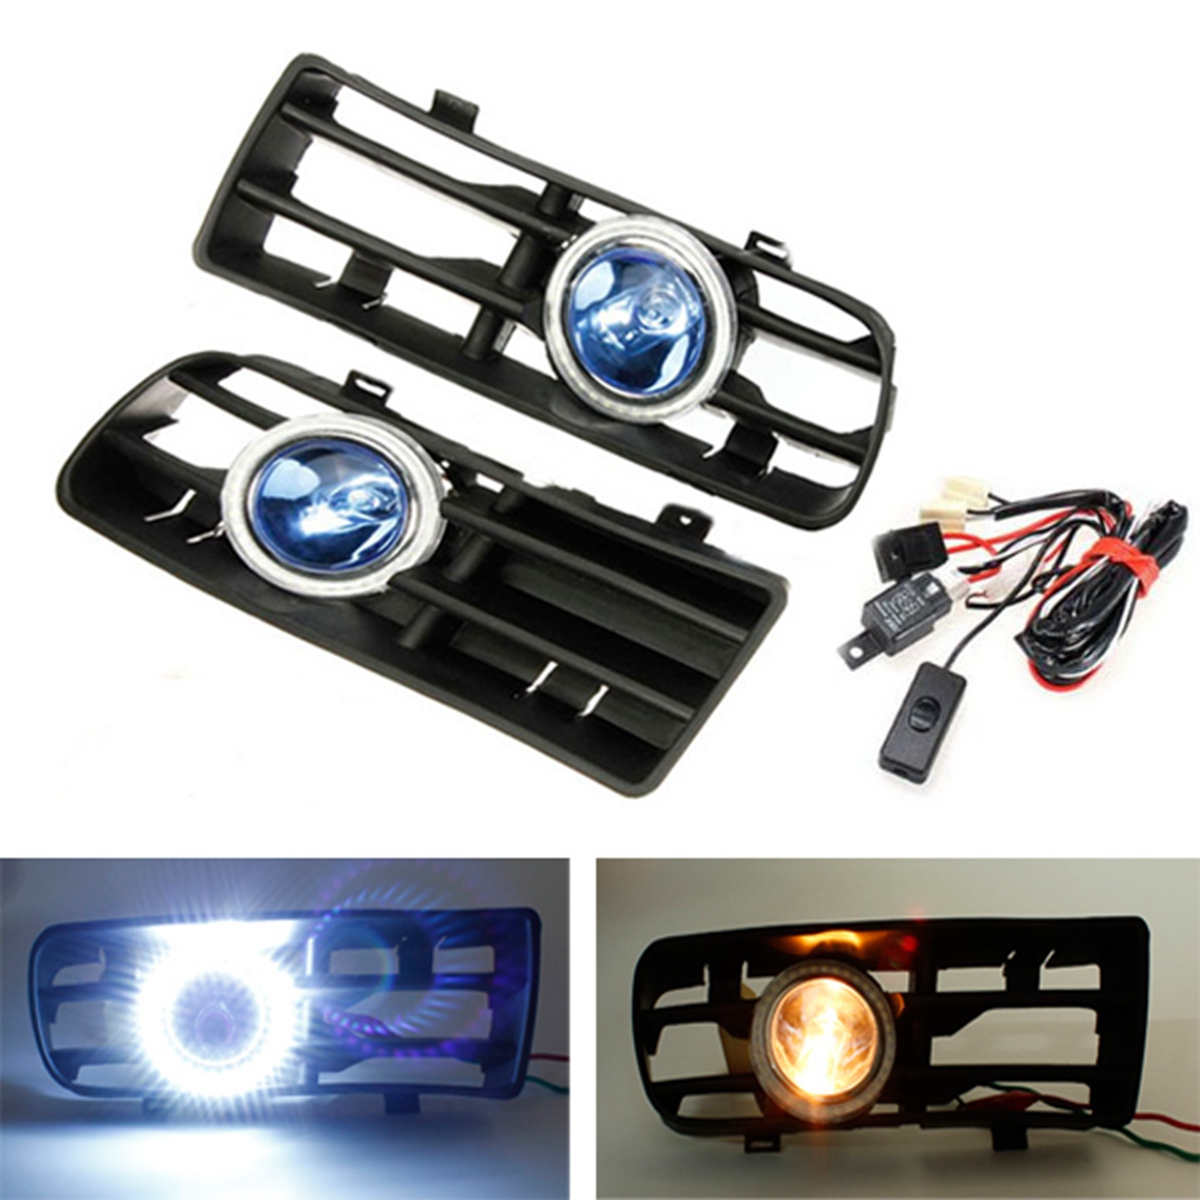 hight resolution of 12v led bumper grille fog light daytime running lamp driving running drl fog lamp foglight turn signal indicator white angel eye wiring harness on off